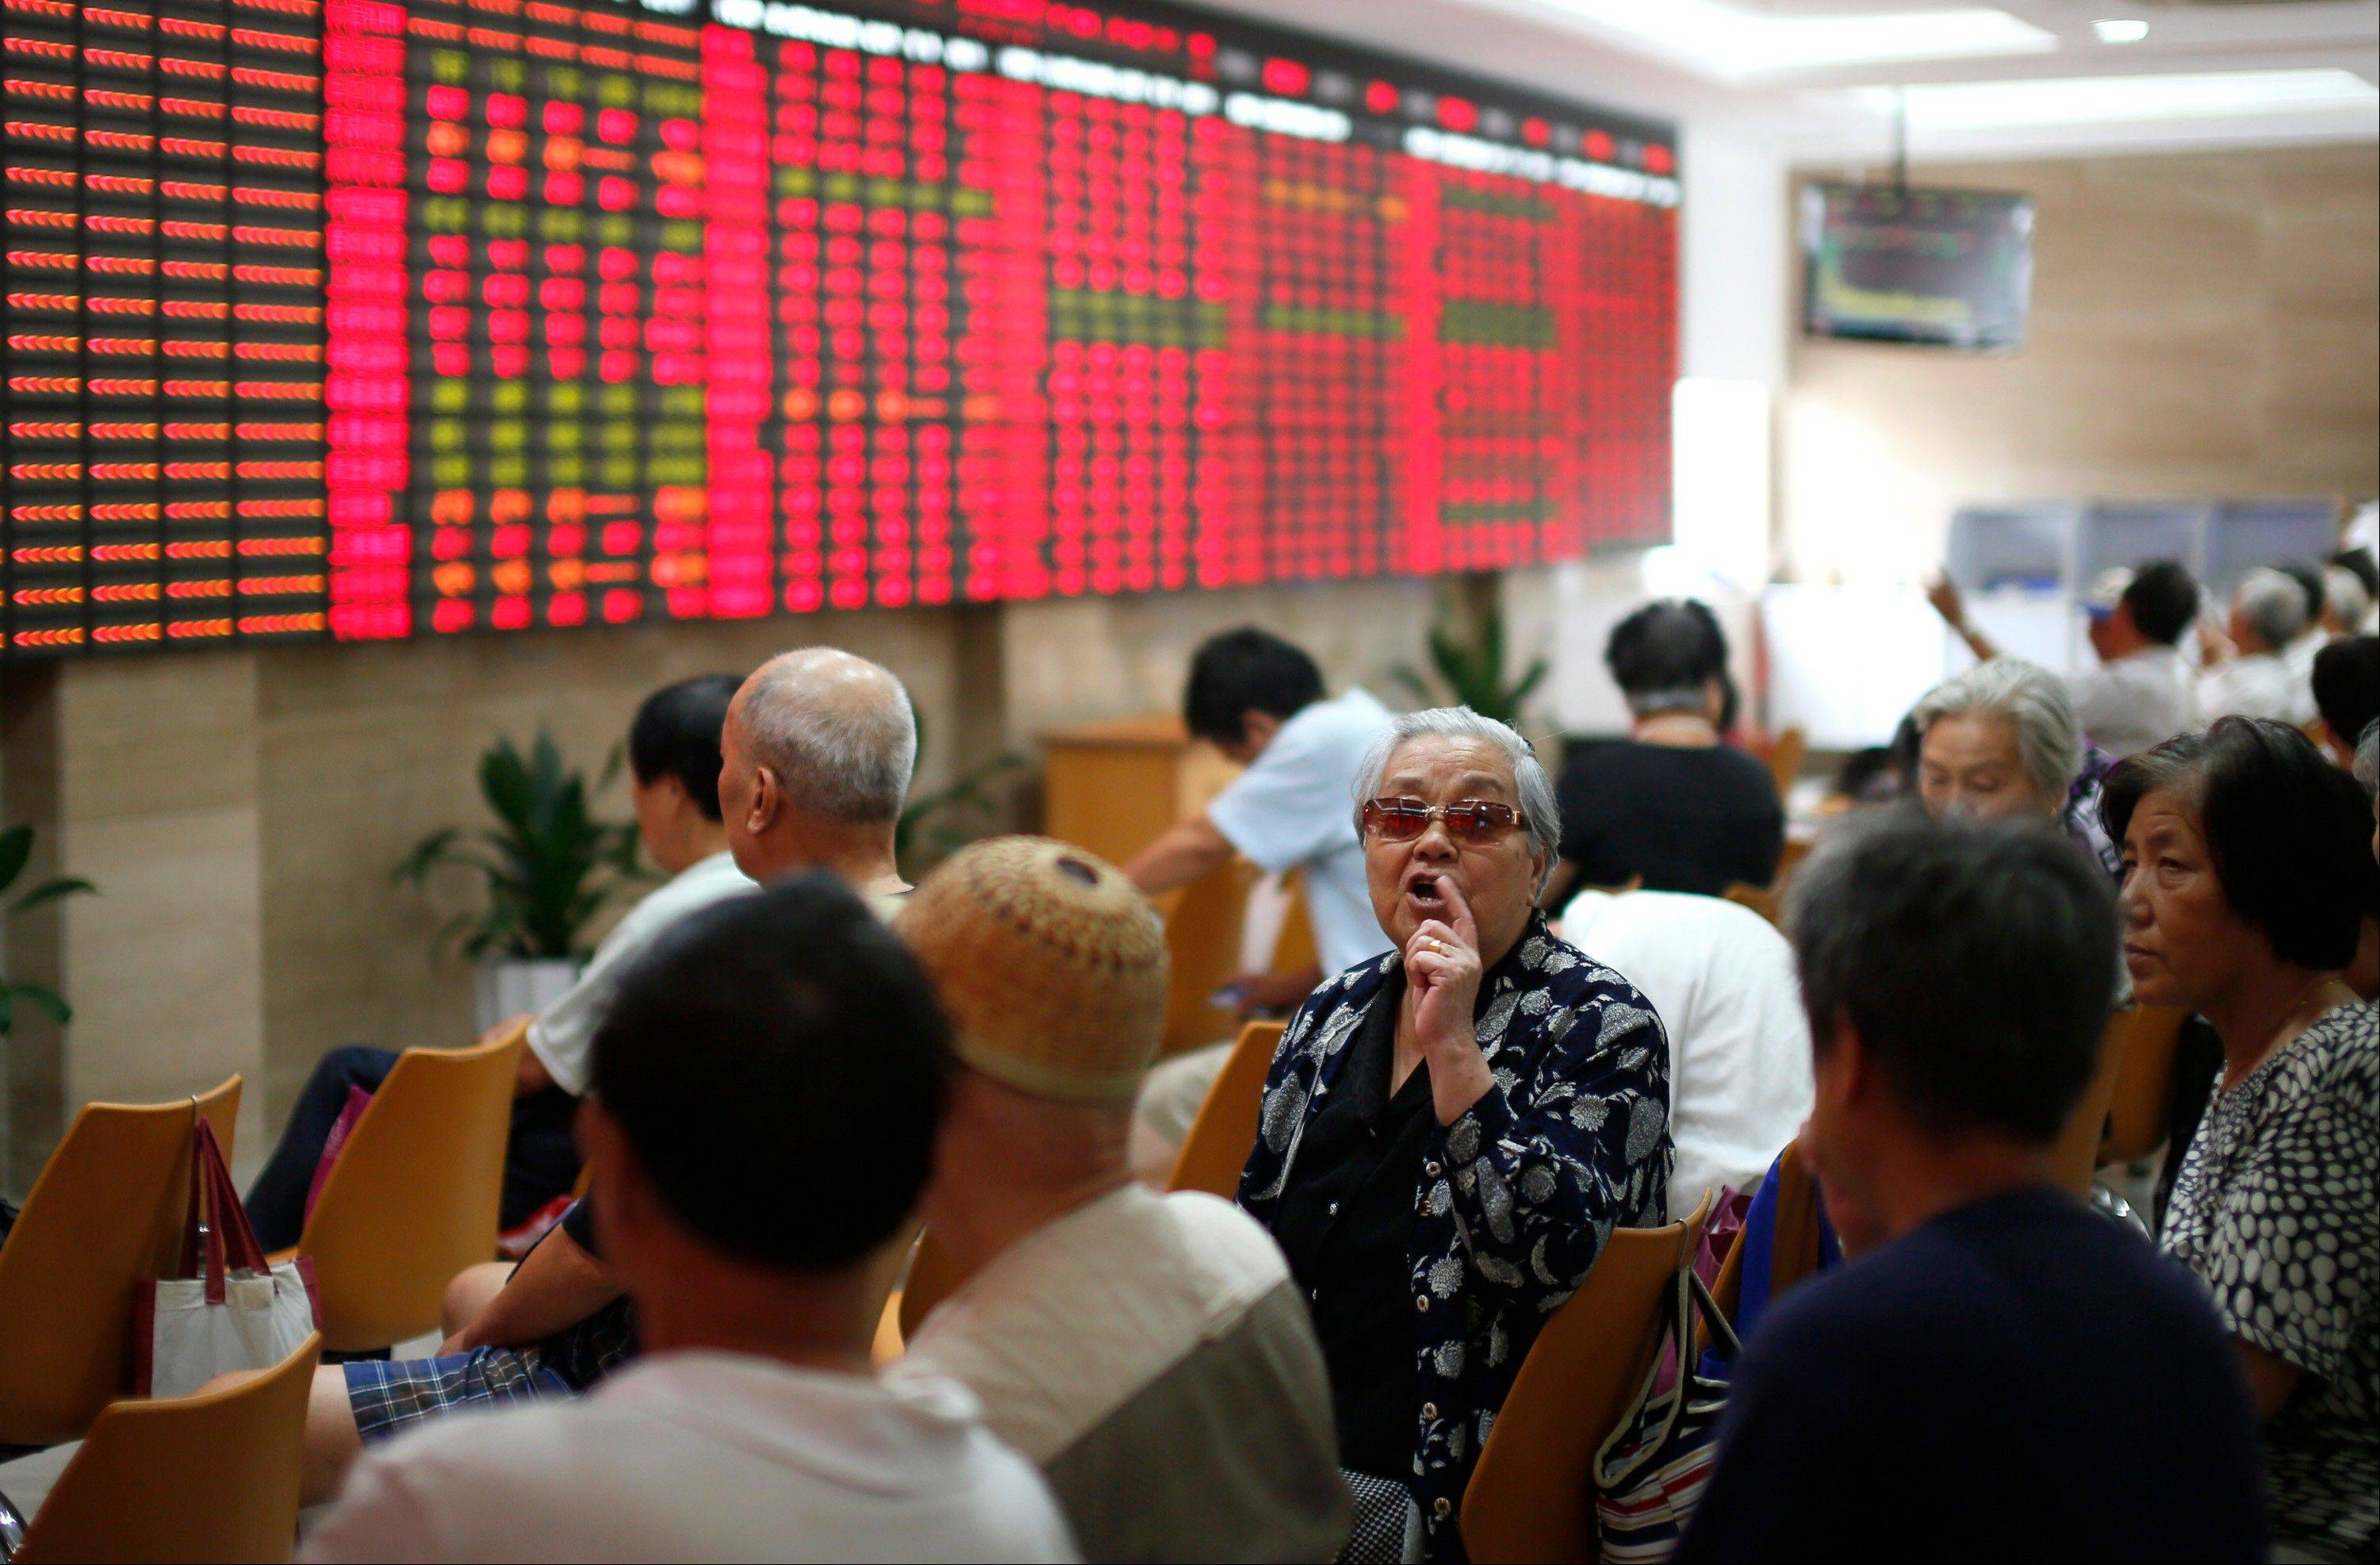 An investor, center, speaks to another while they look at the stock price monitor at a private securities company Friday in Shanghai, China.